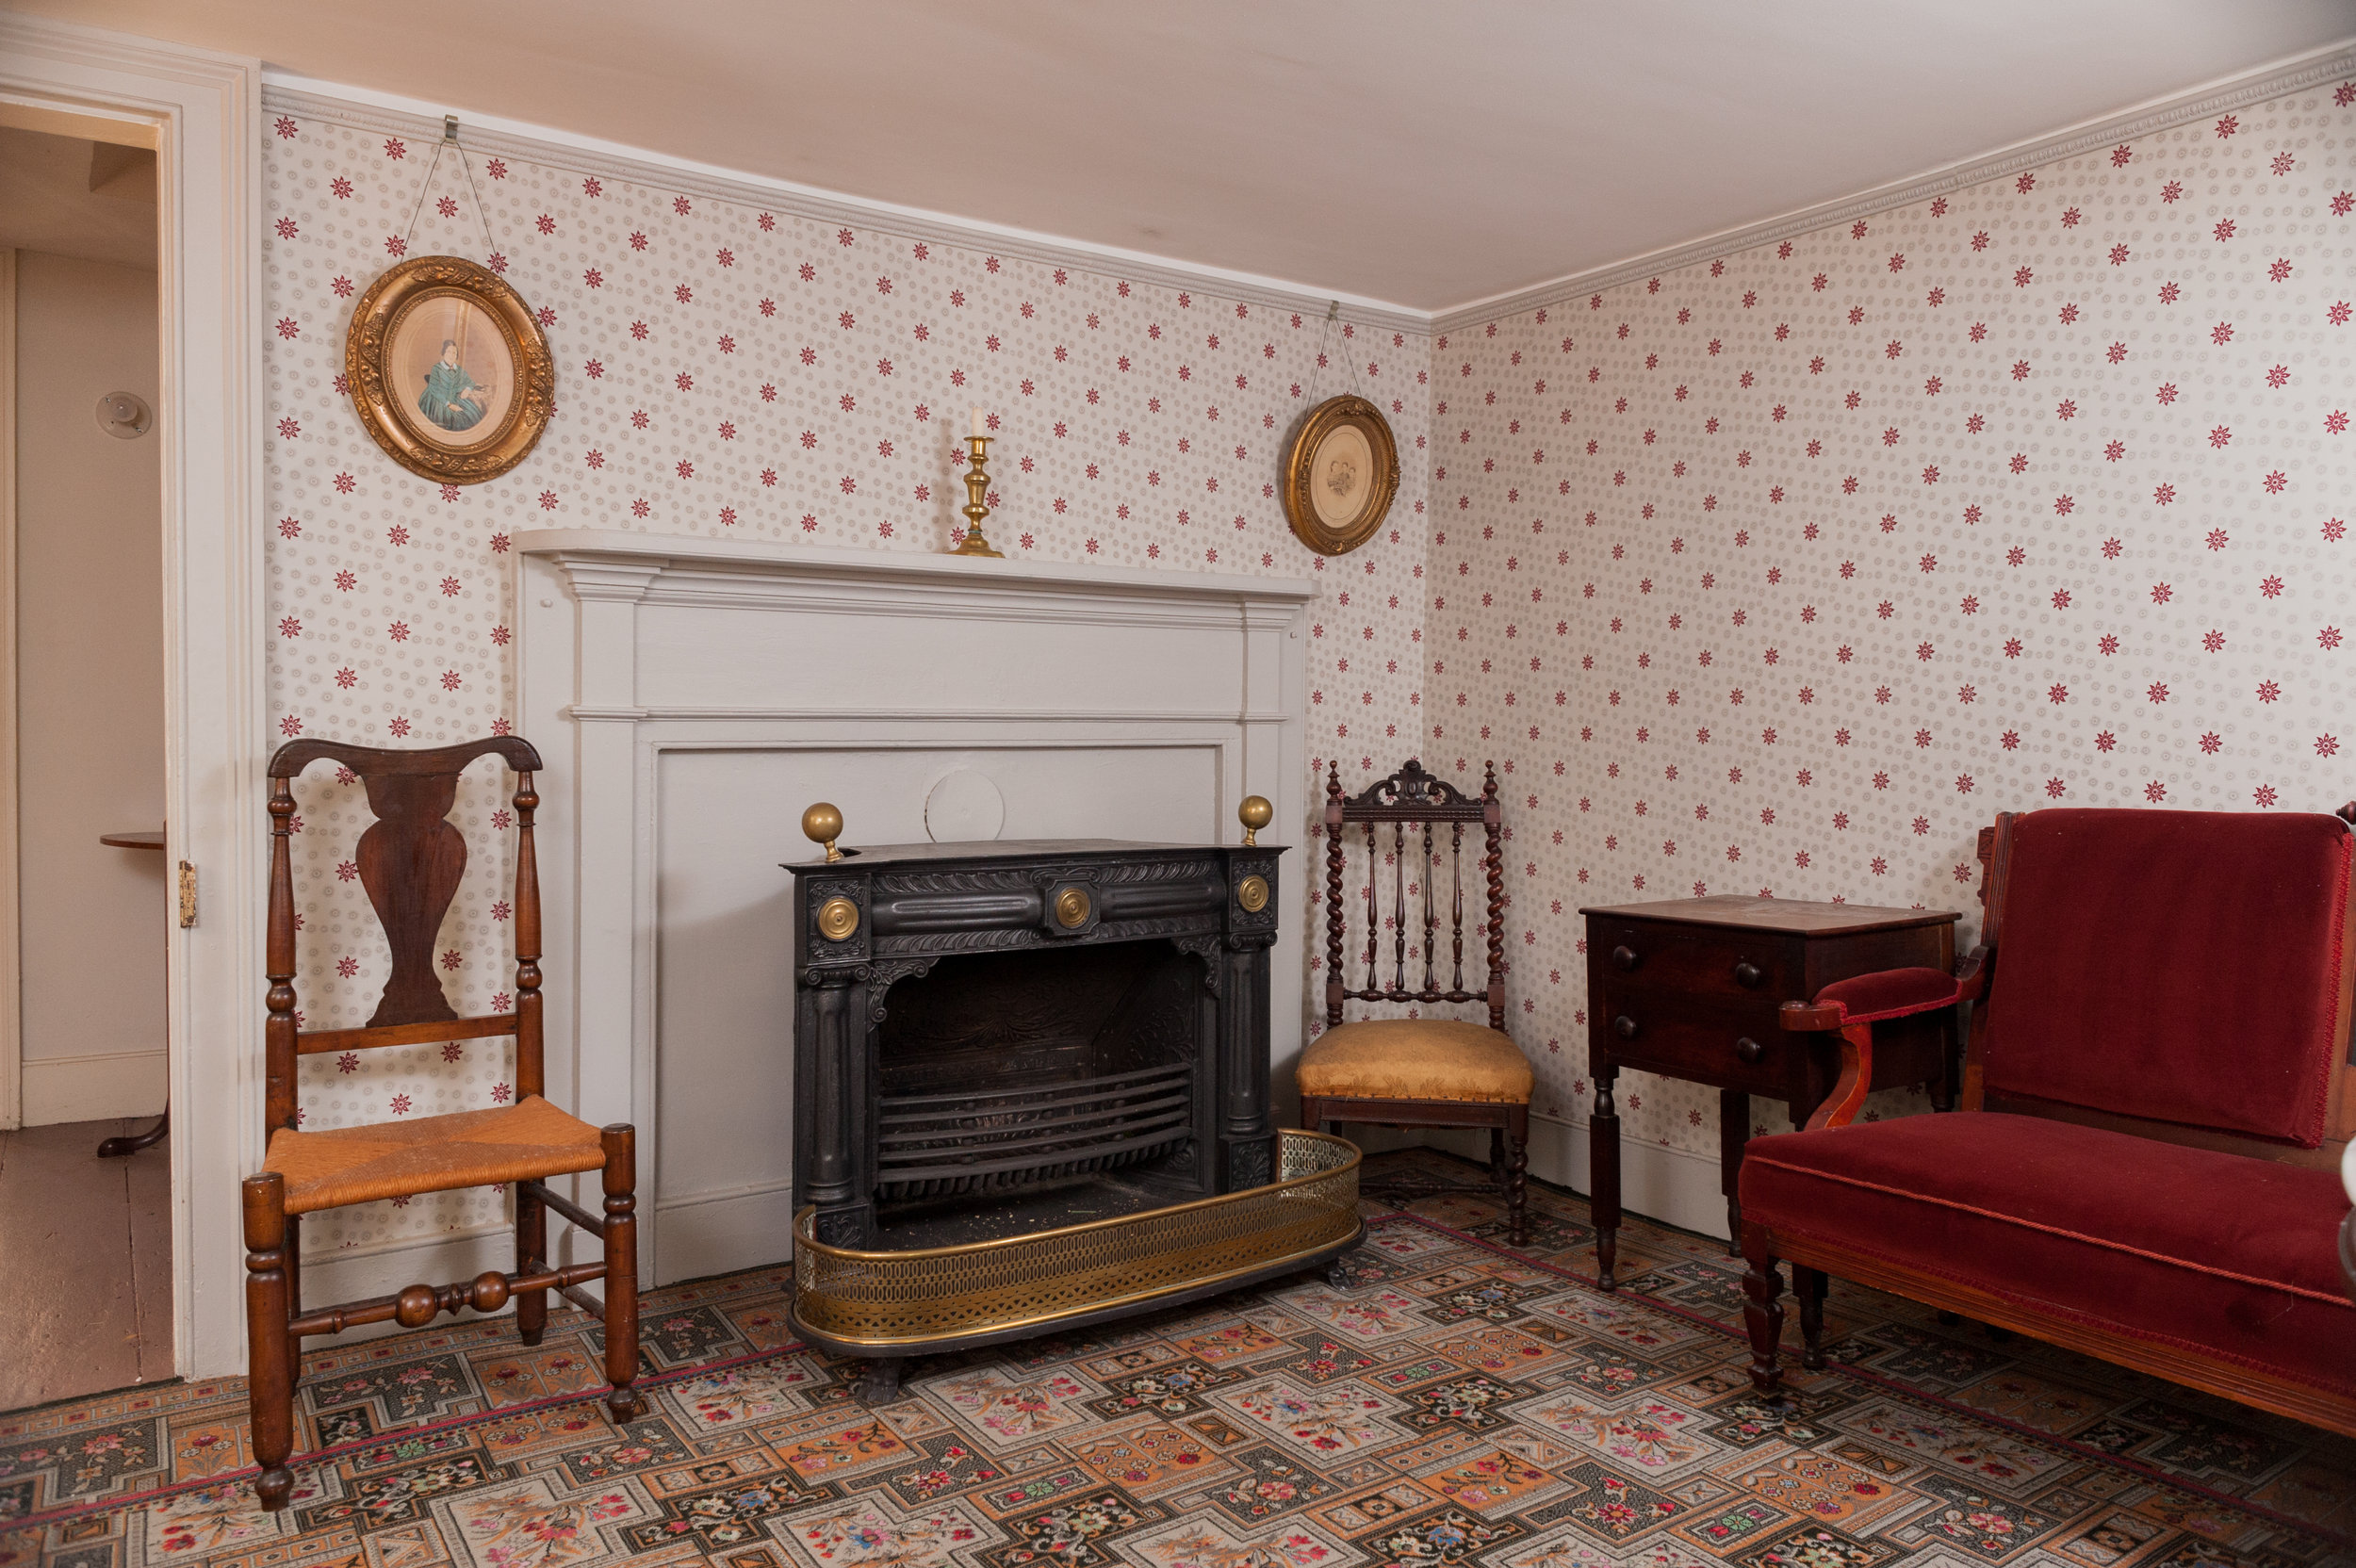 A Franklin stove kept theparlorwarm. It is one of several in the house.